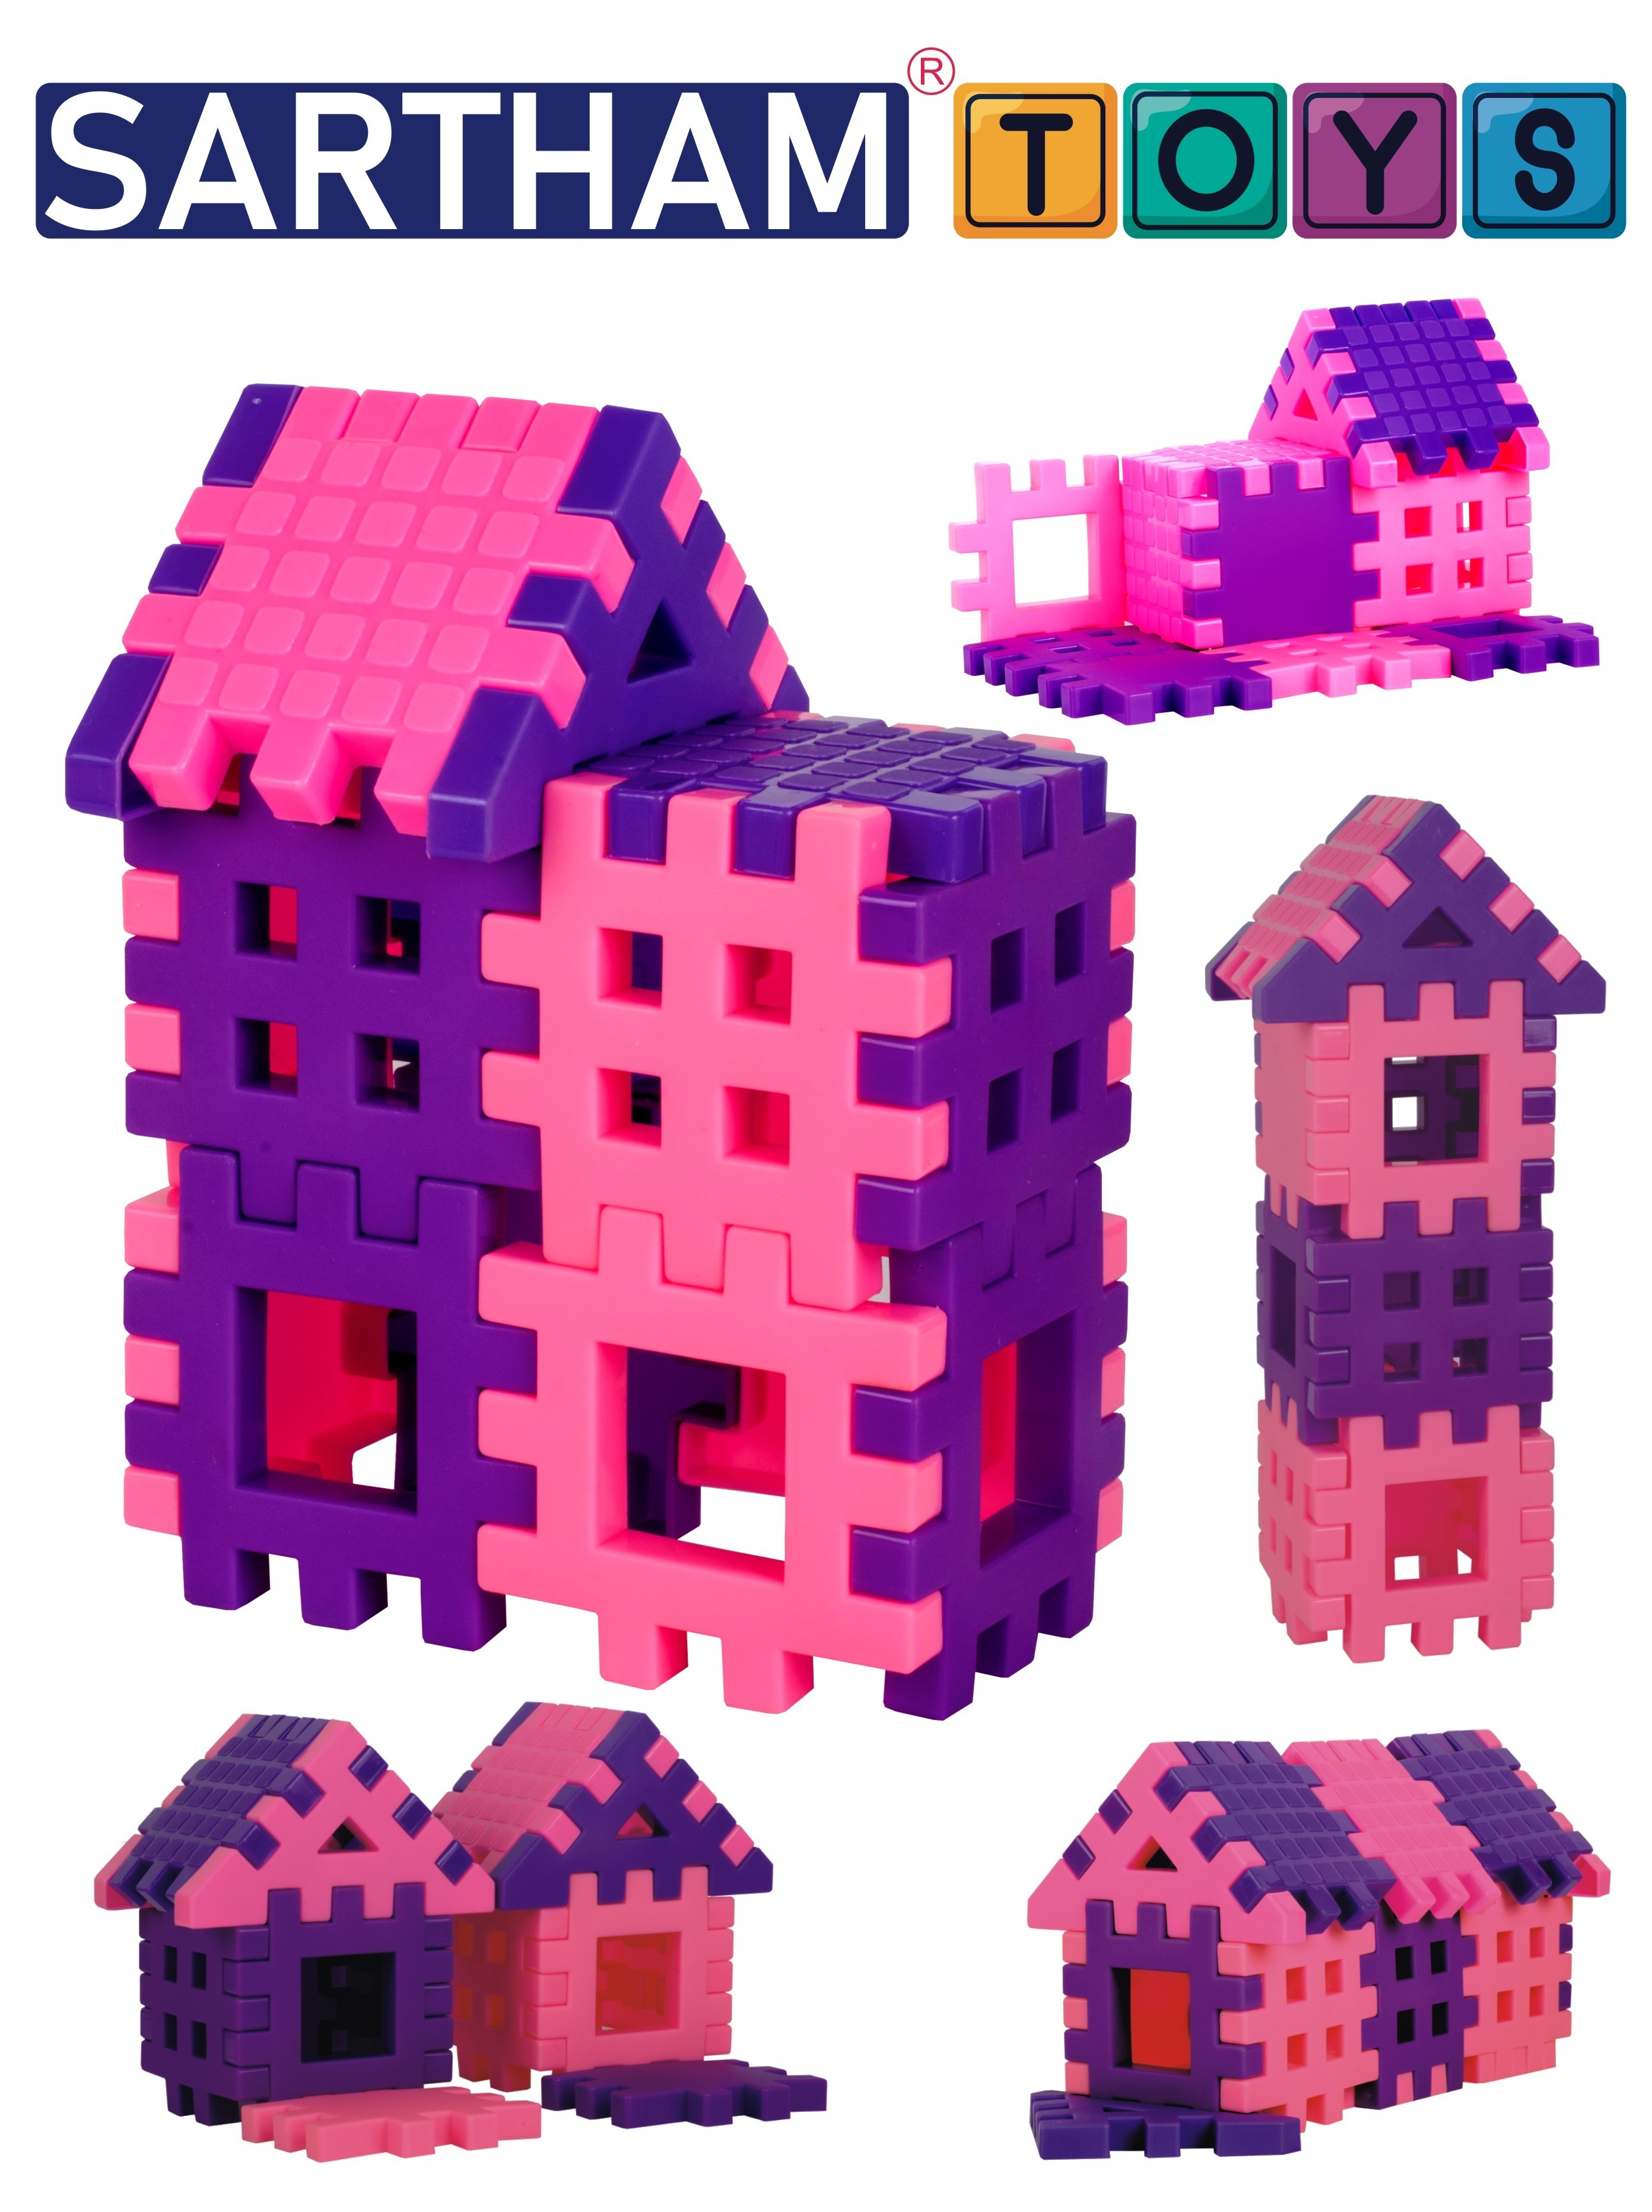 Sartham, Building Block Toy for Girl Kids, Age 3 to 10 Years (Multicolor)